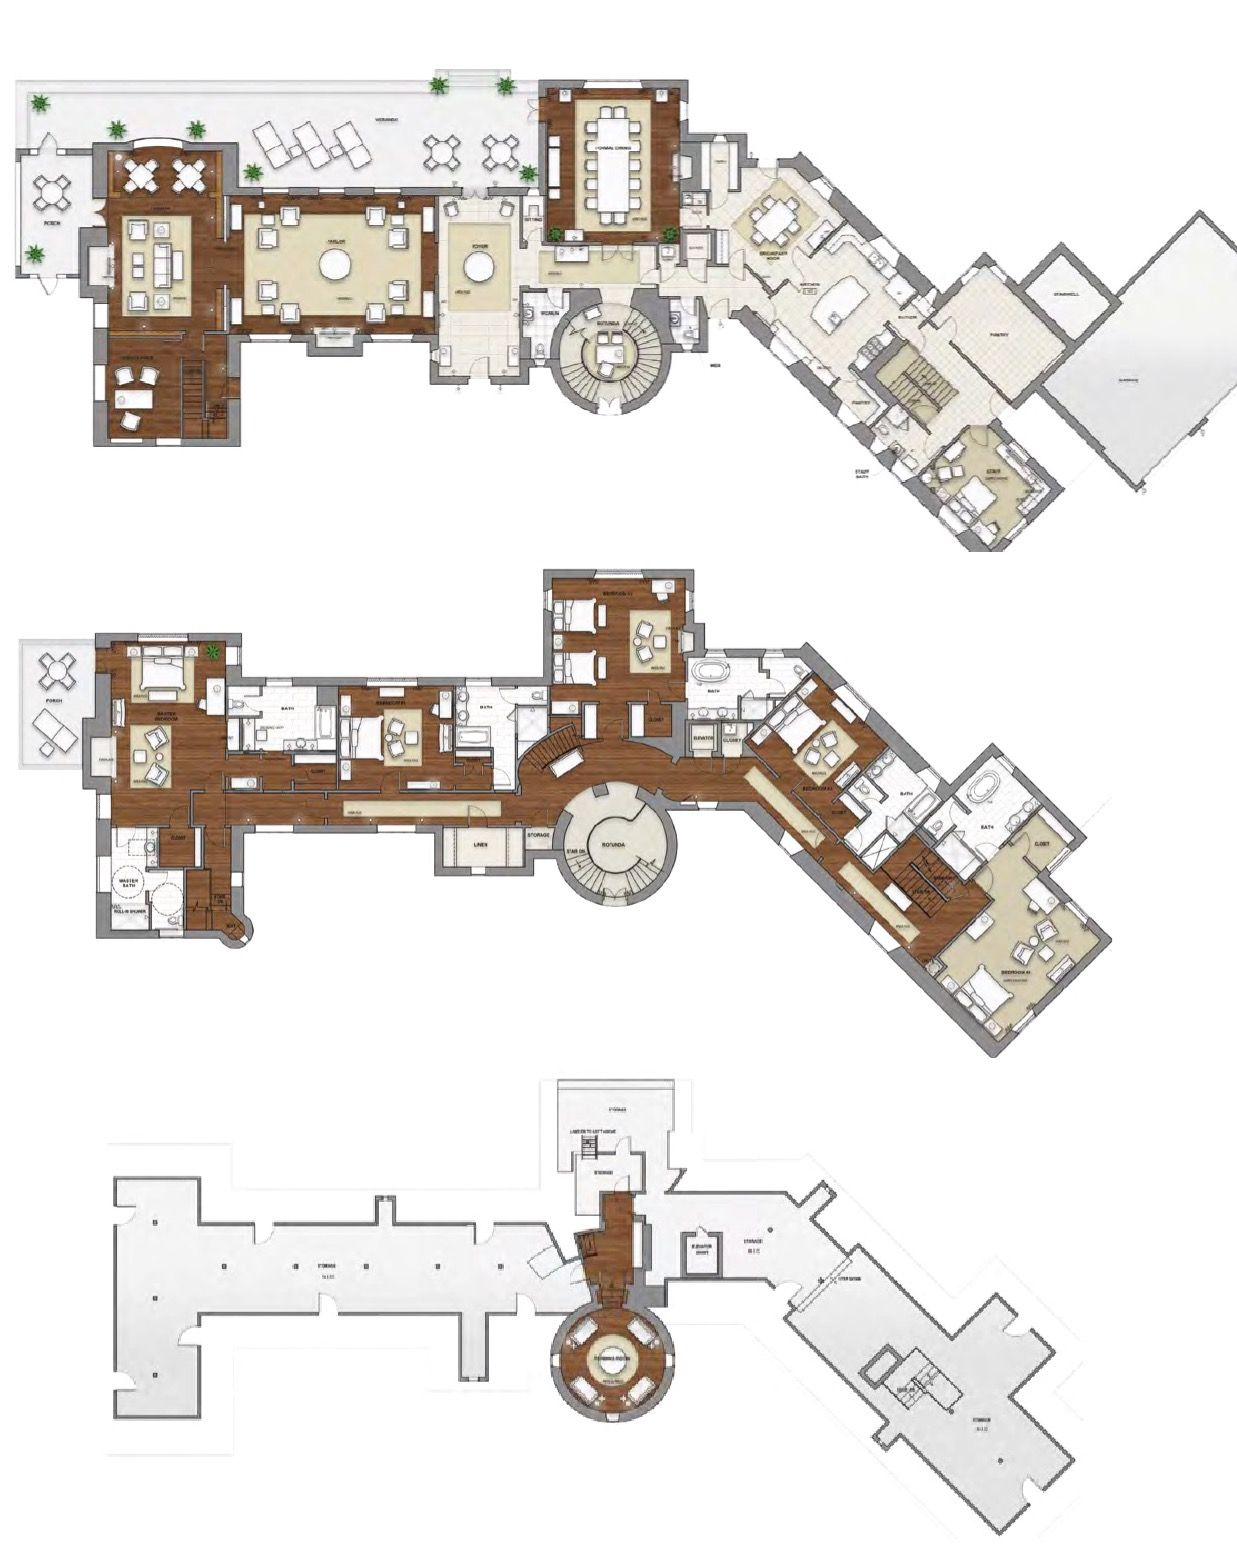 The Broadmoor Estate House 12 000 Square Foot House Plans Architectural Design House Plans Home Design Plans